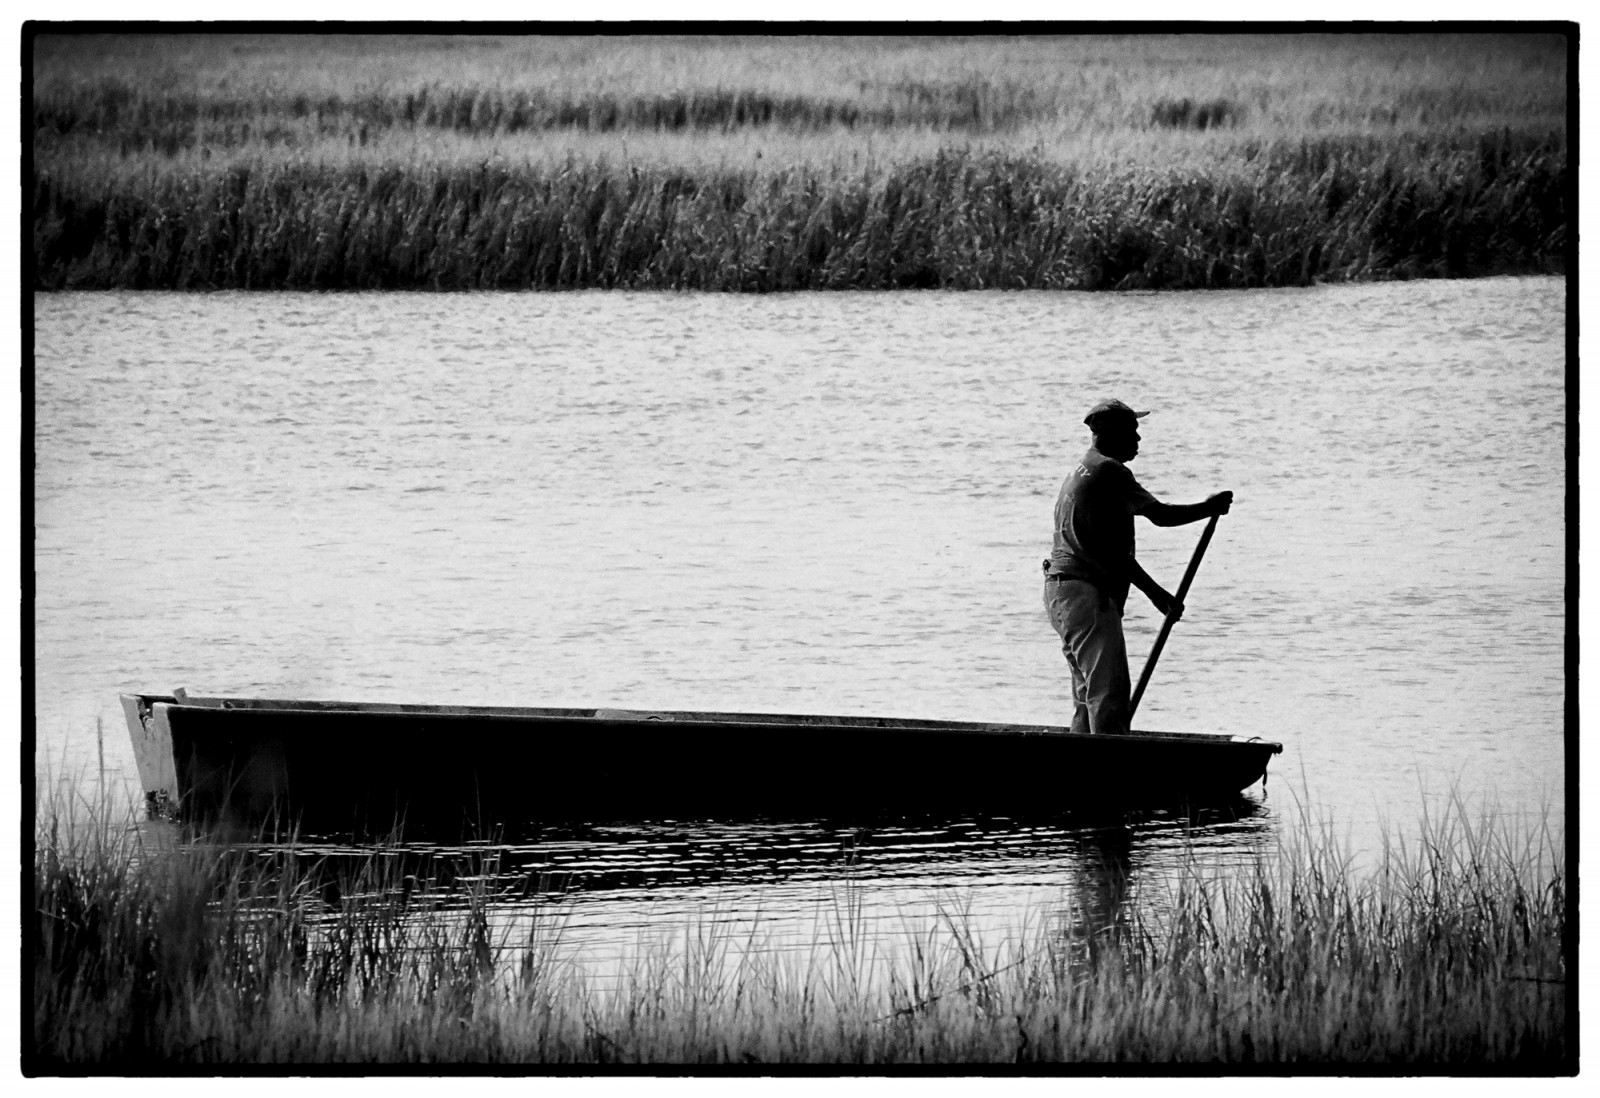 Hilton Head Native Islander Harry Murray pilots his bateau boat in a creek off of Hilton Head Island. Bateau boats, shallow-draft, flat-bottomed boats, were important for transportation, as well as fishing. There are very few Gullah Geechee that still use them and finding someone who still makes them by hand is rare.